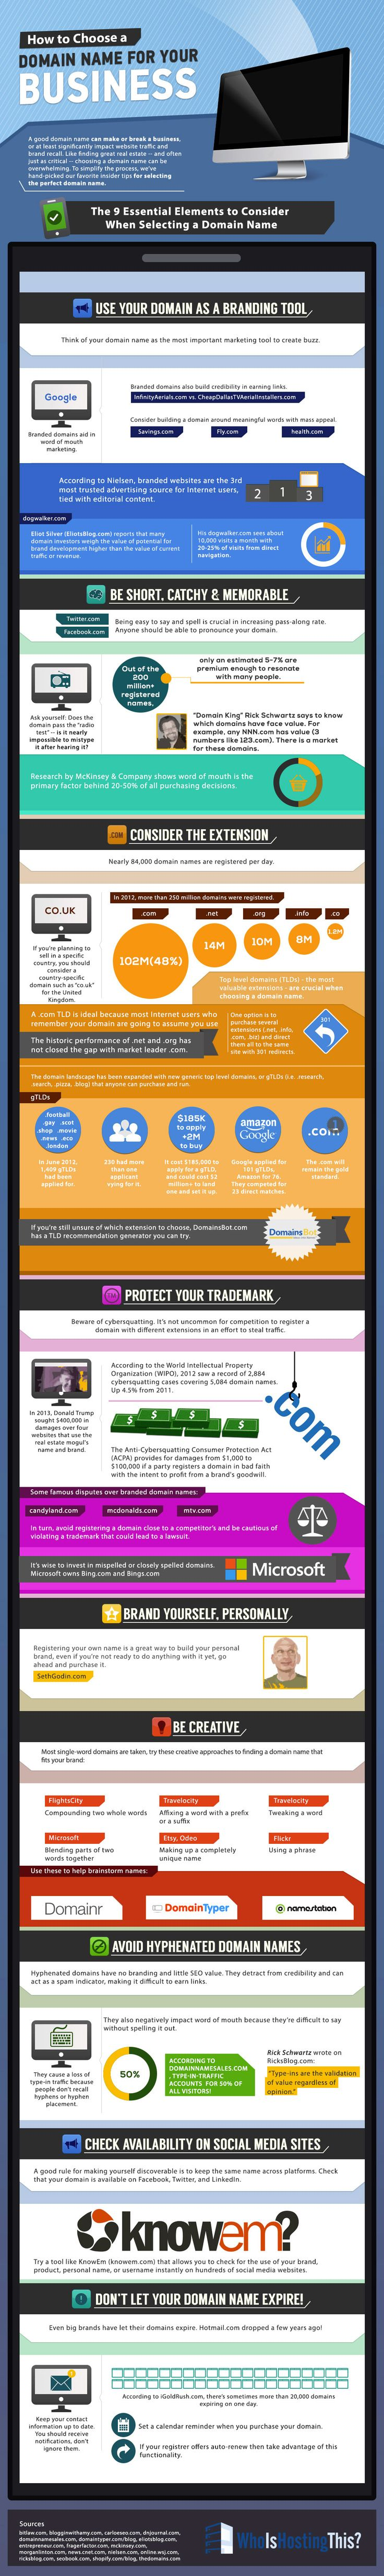 9 Essential Elements of Choosing a Domain Name (Infographic)